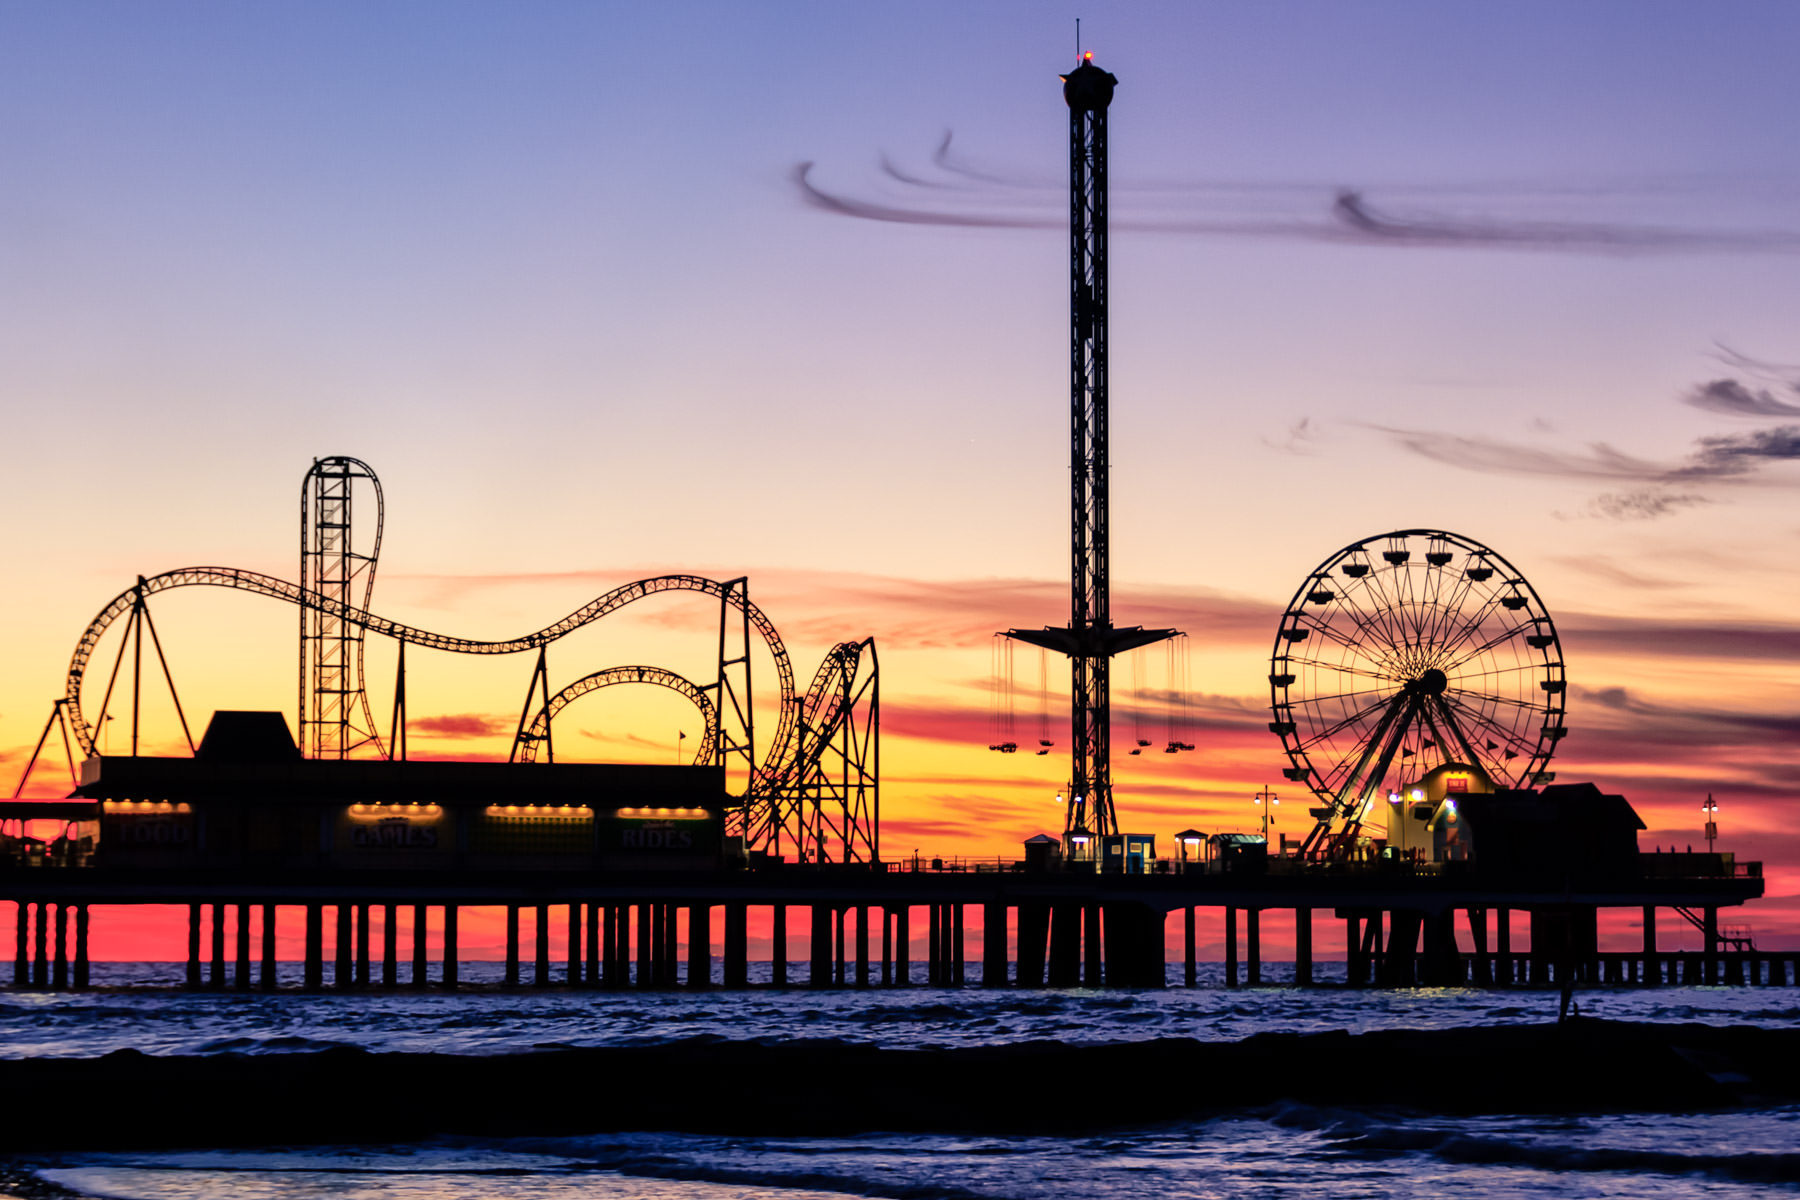 Galveston, Texas' Historic Pleasure Pier, silhouetted by the sunrise.